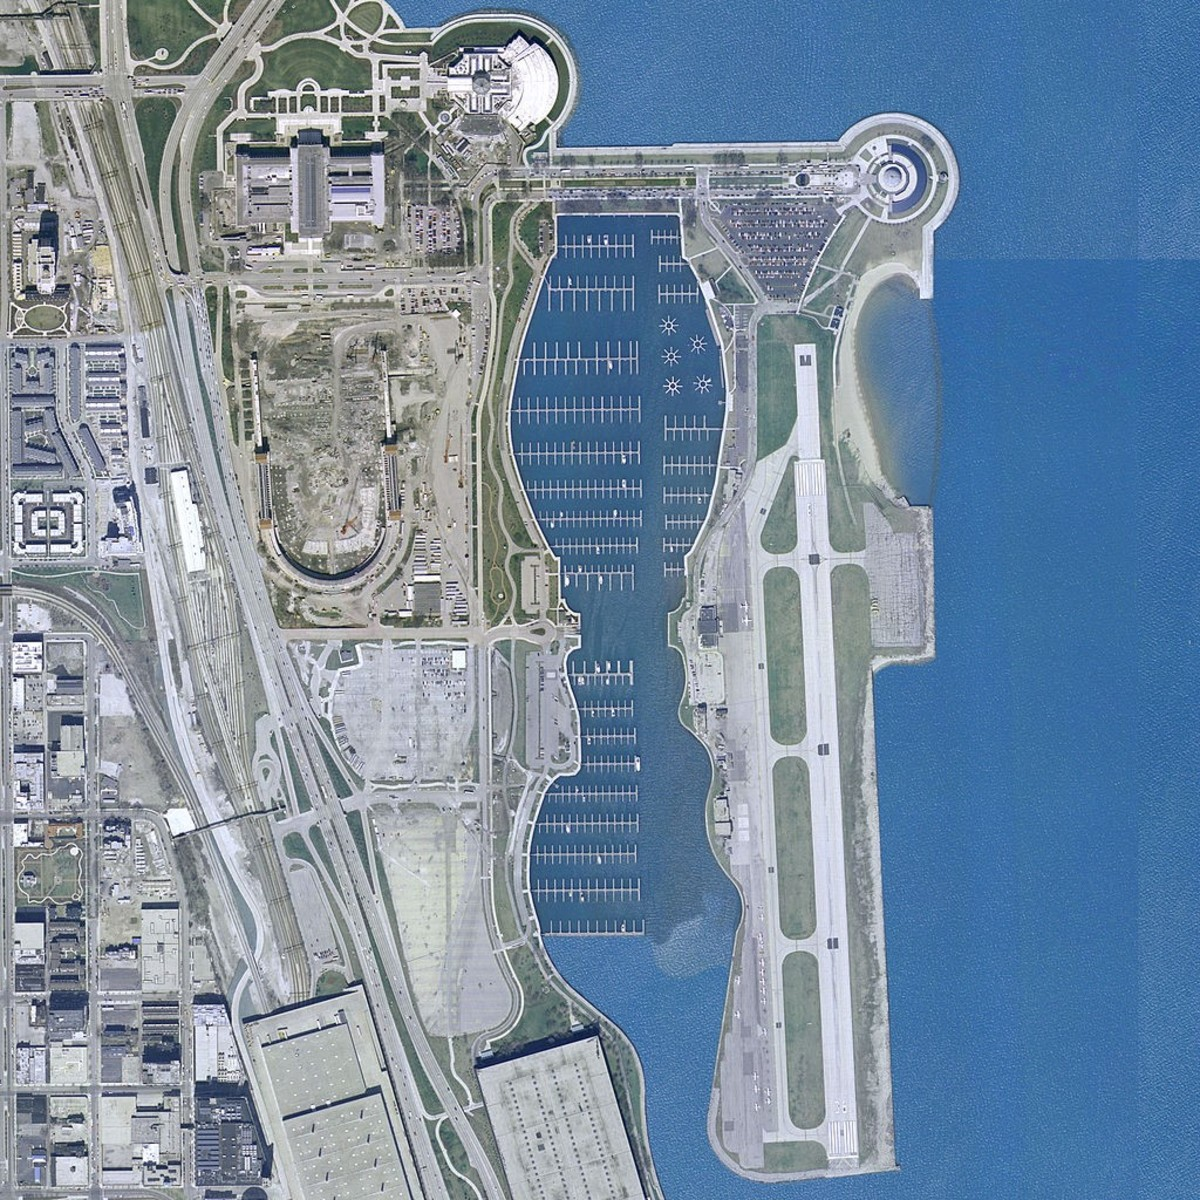 Chicago used to have a lake front airport. Now its Northerly Island an urban nirvana.